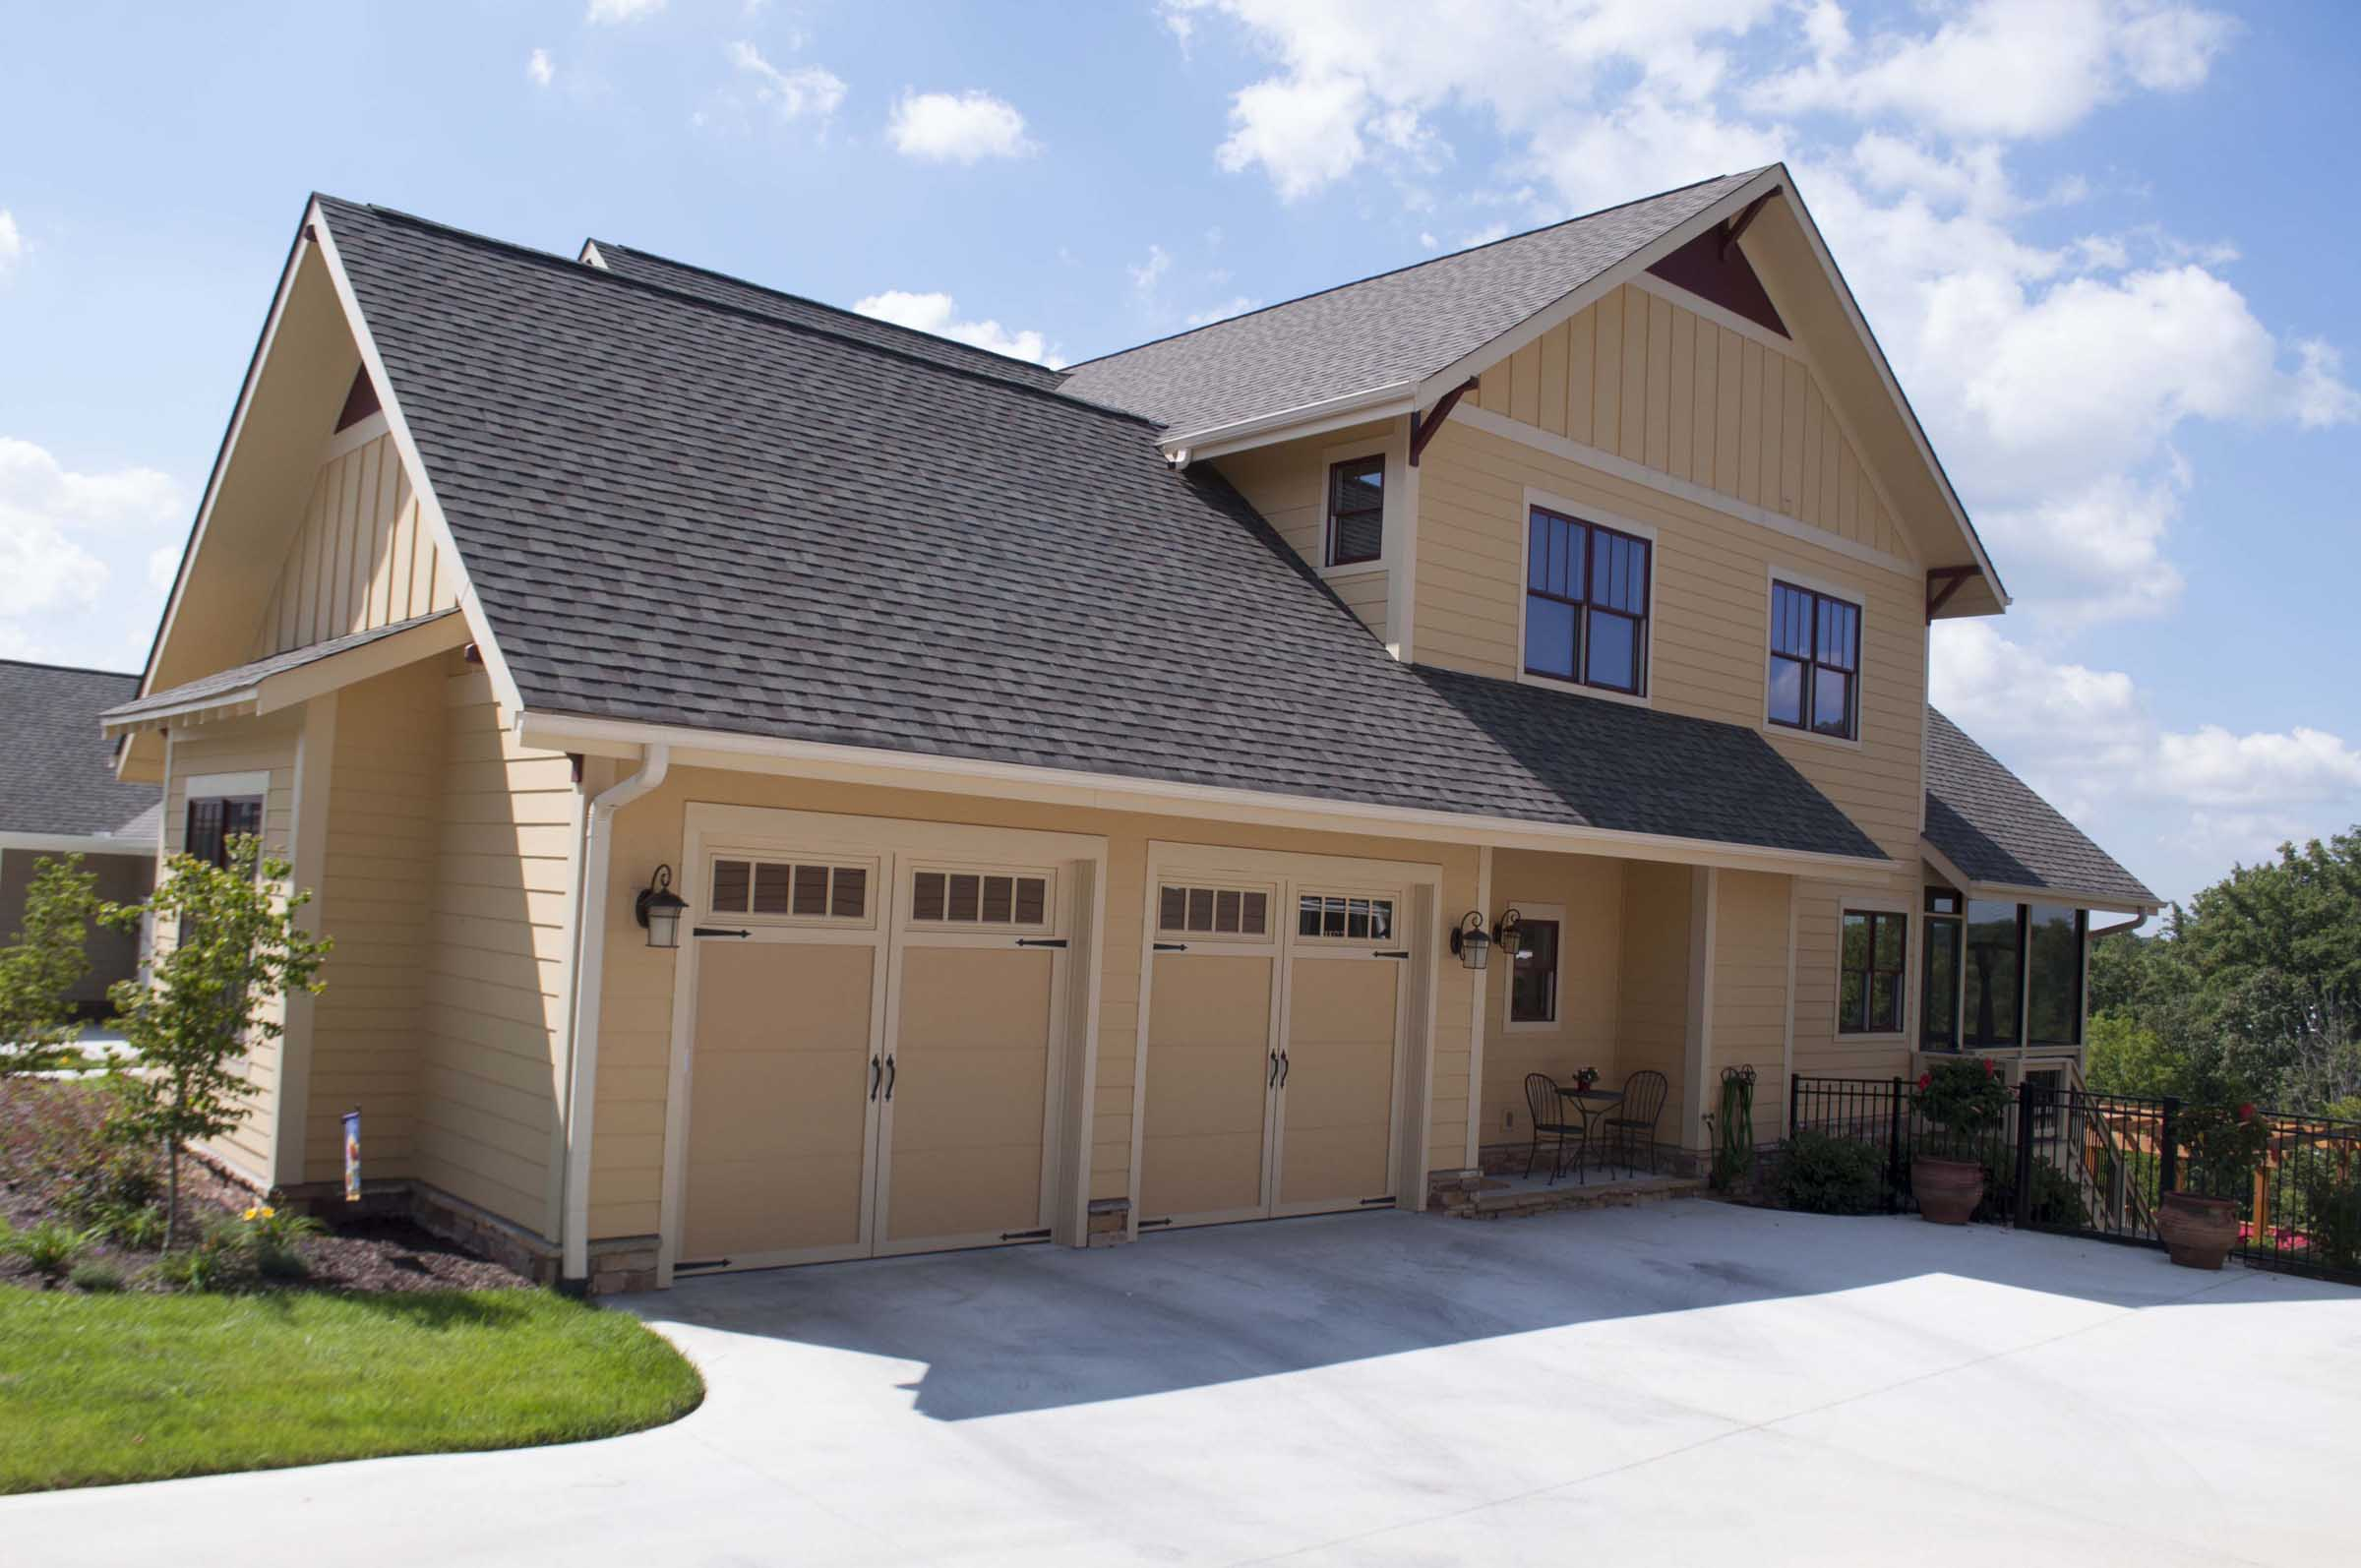 Garage Doors Knoxville Knoxville Residential Garage Door Projects Overhead Door Company